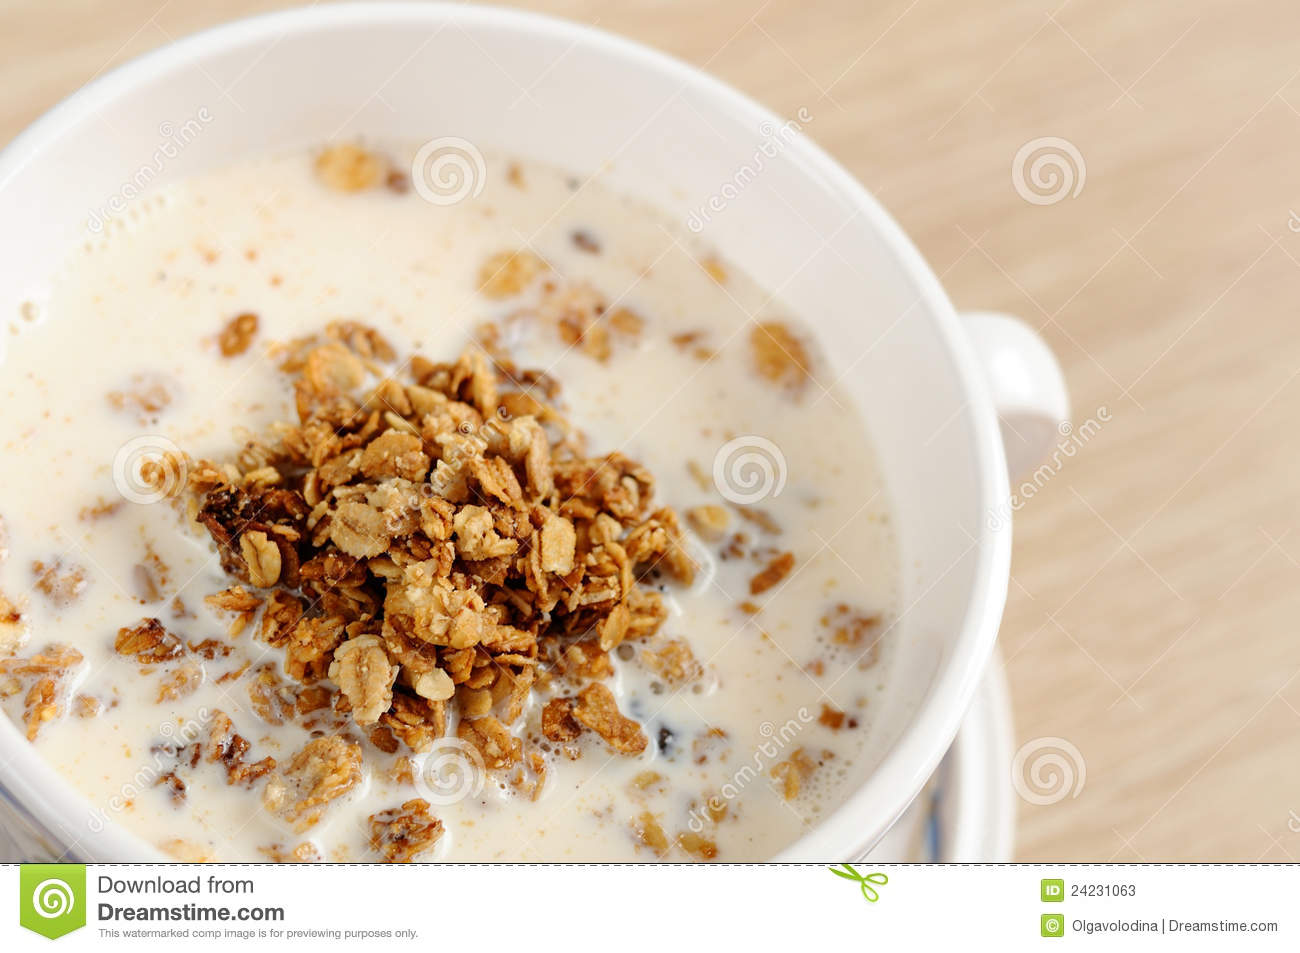 Breakfast - Muesli With Milk Stock Photos - Image: 24231063